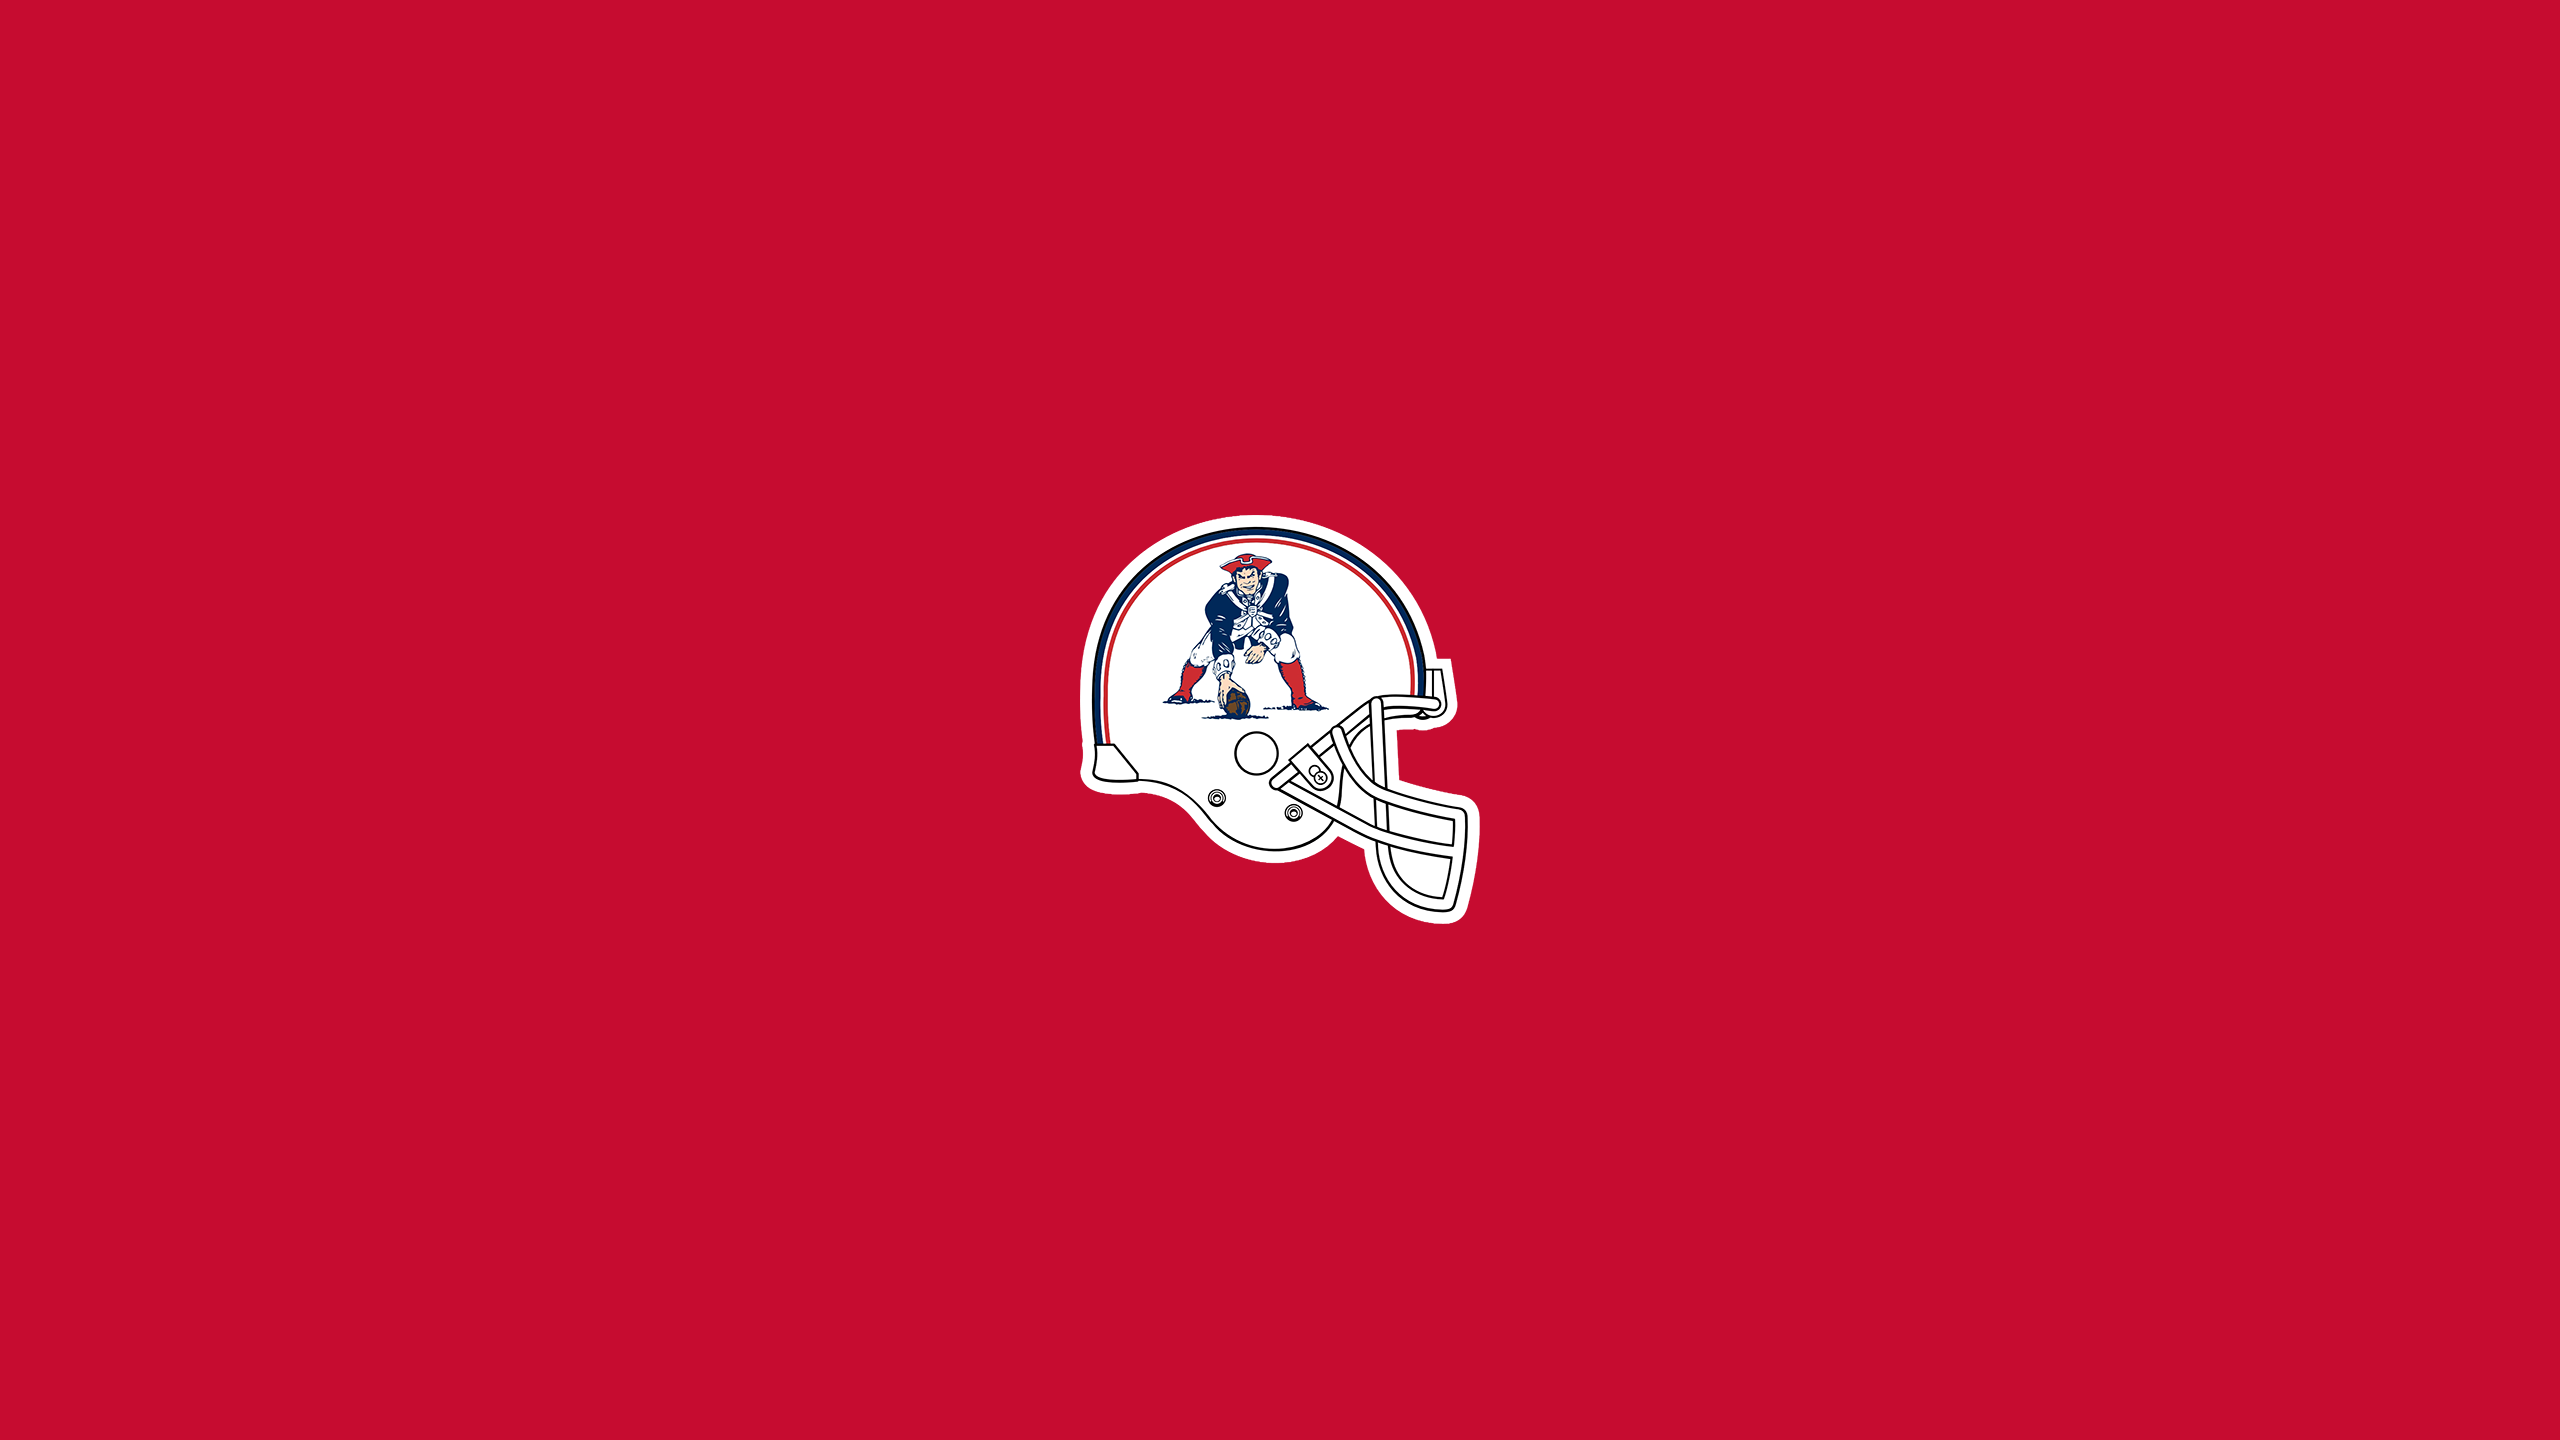 New England Patriots (Old School)